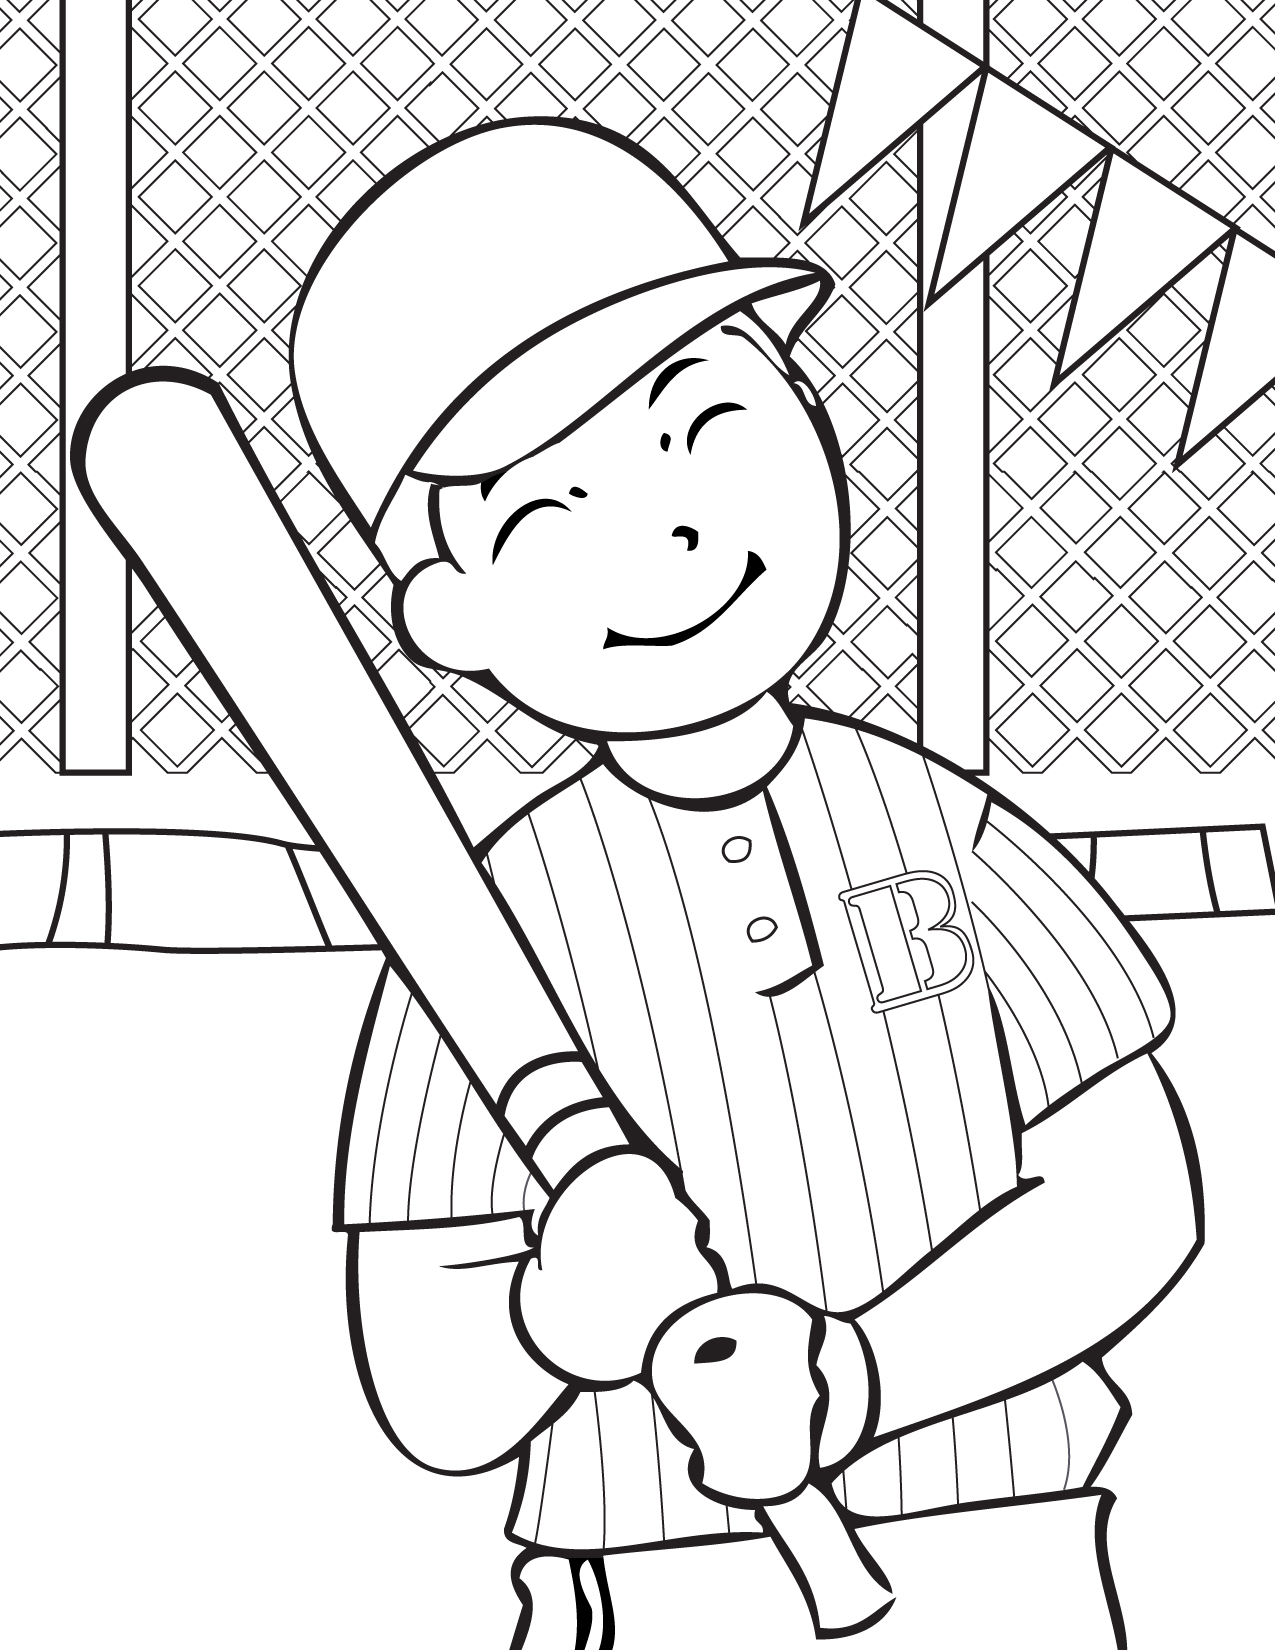 Free printable baseball coloring pages for kids best for Coloring pages t